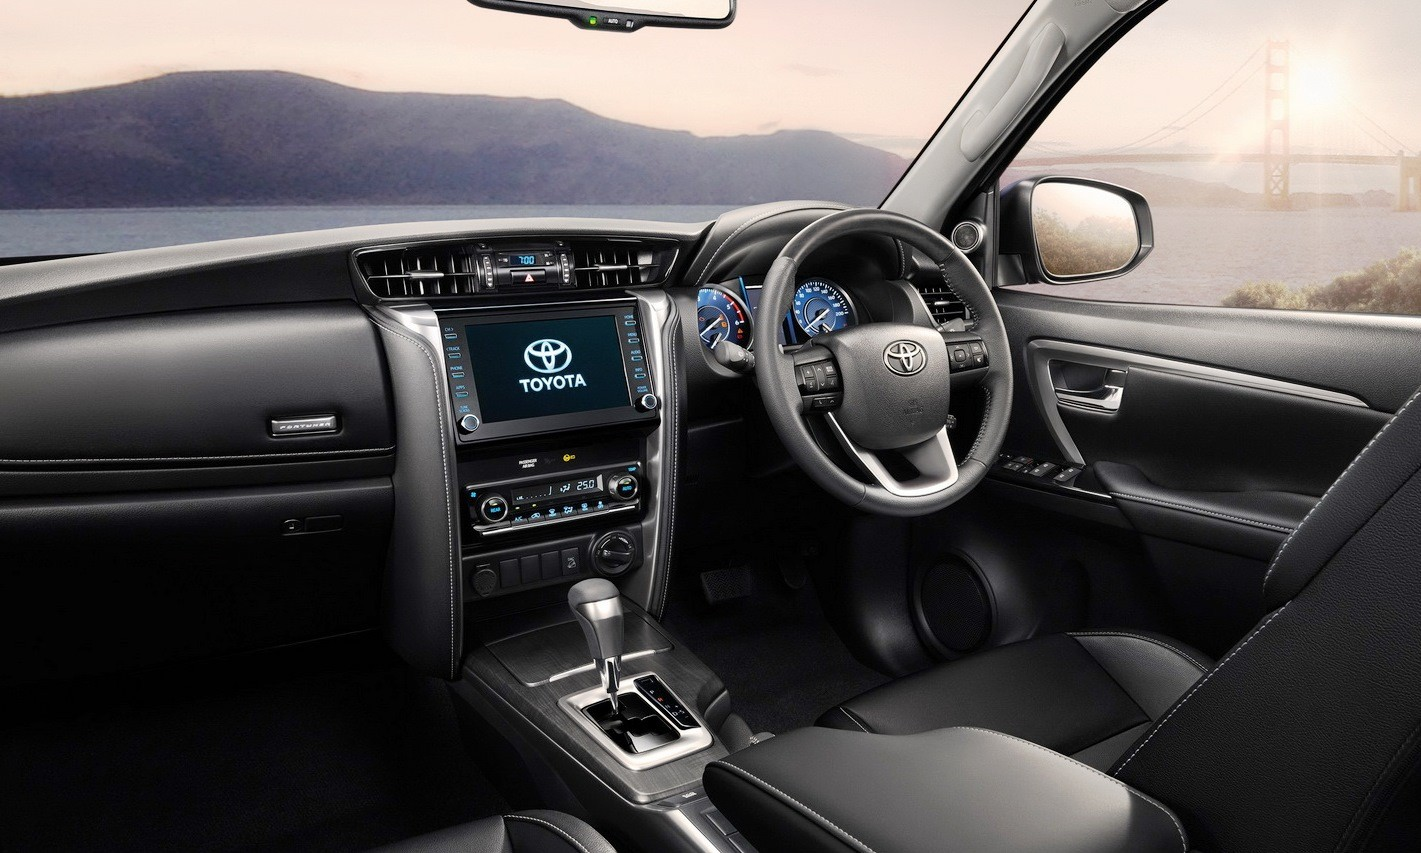 Facelifted Toyota Fortuner interior